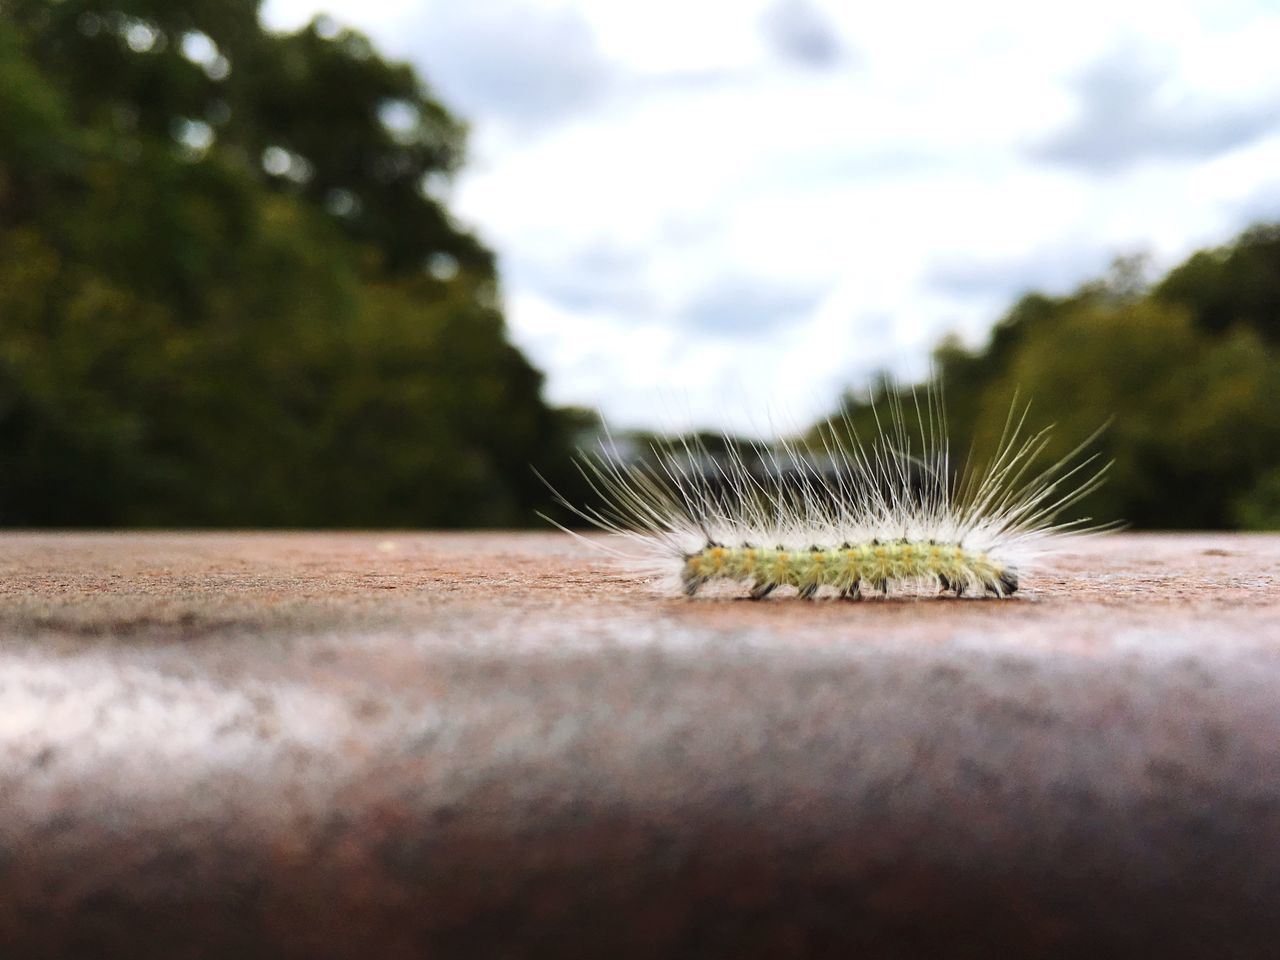 Surface level view of spiked caterpillar on retaining wall